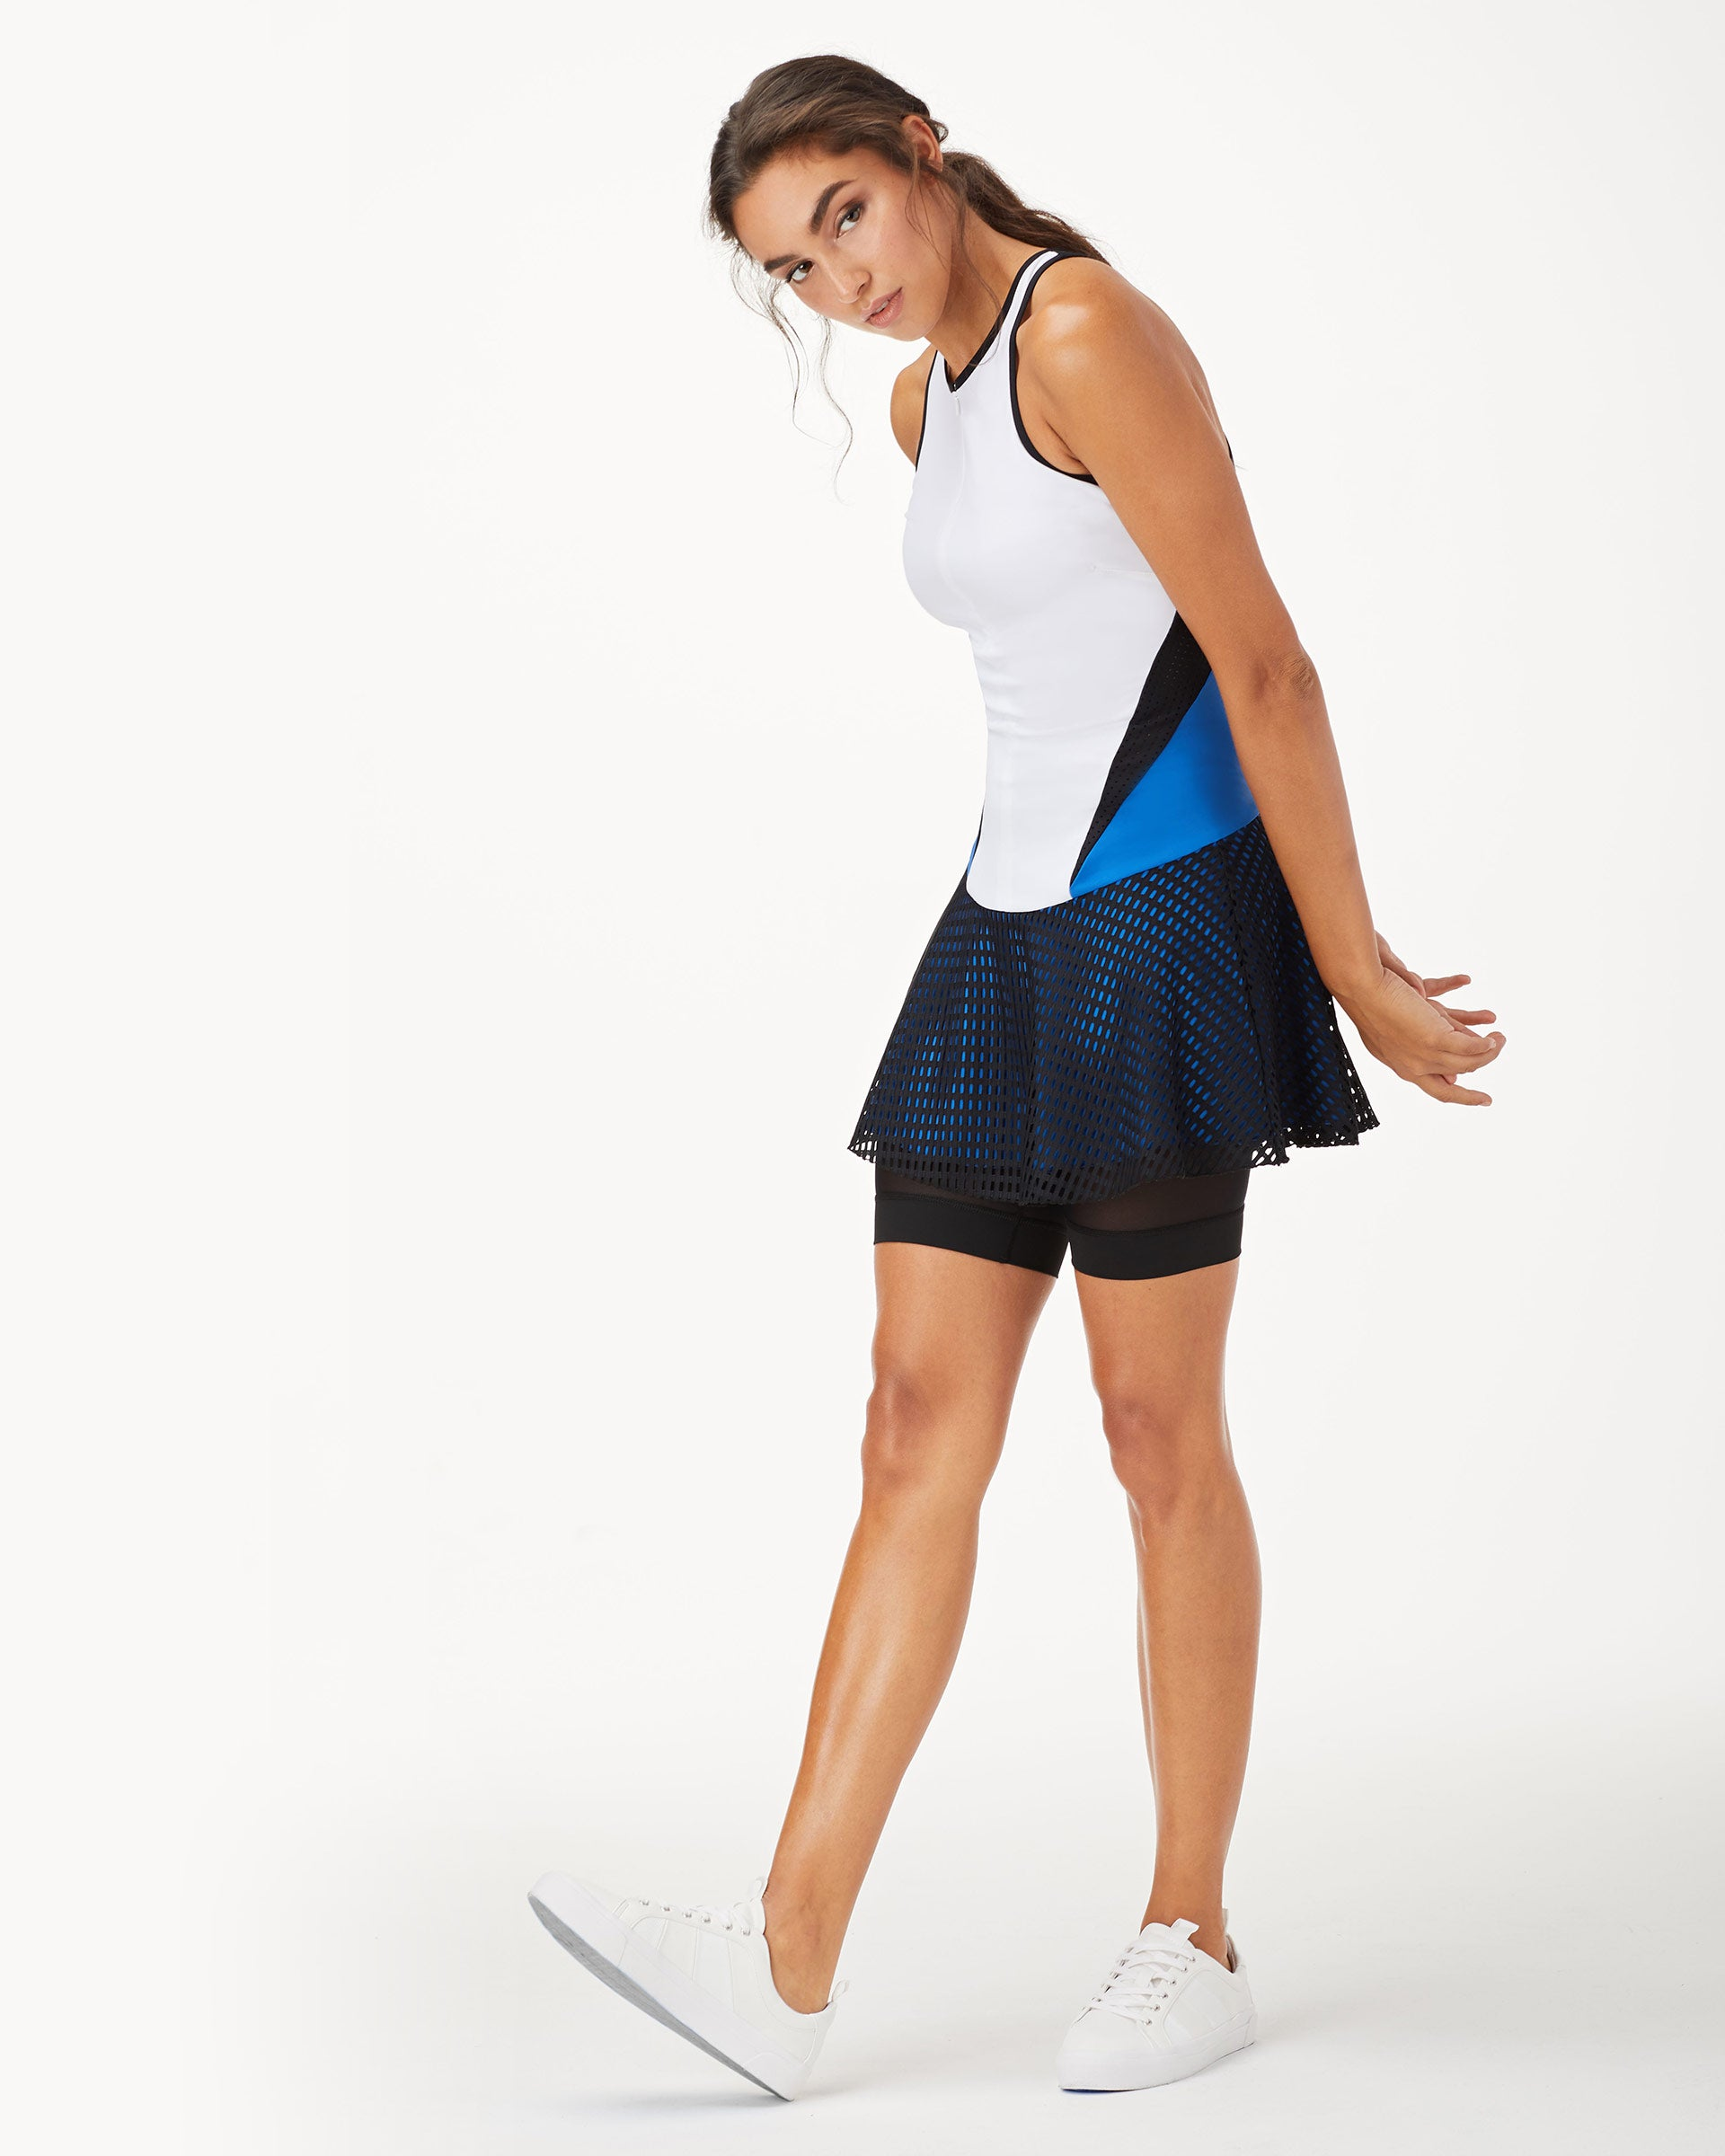 drop-tennis-dress-white-black-adriatic-blue